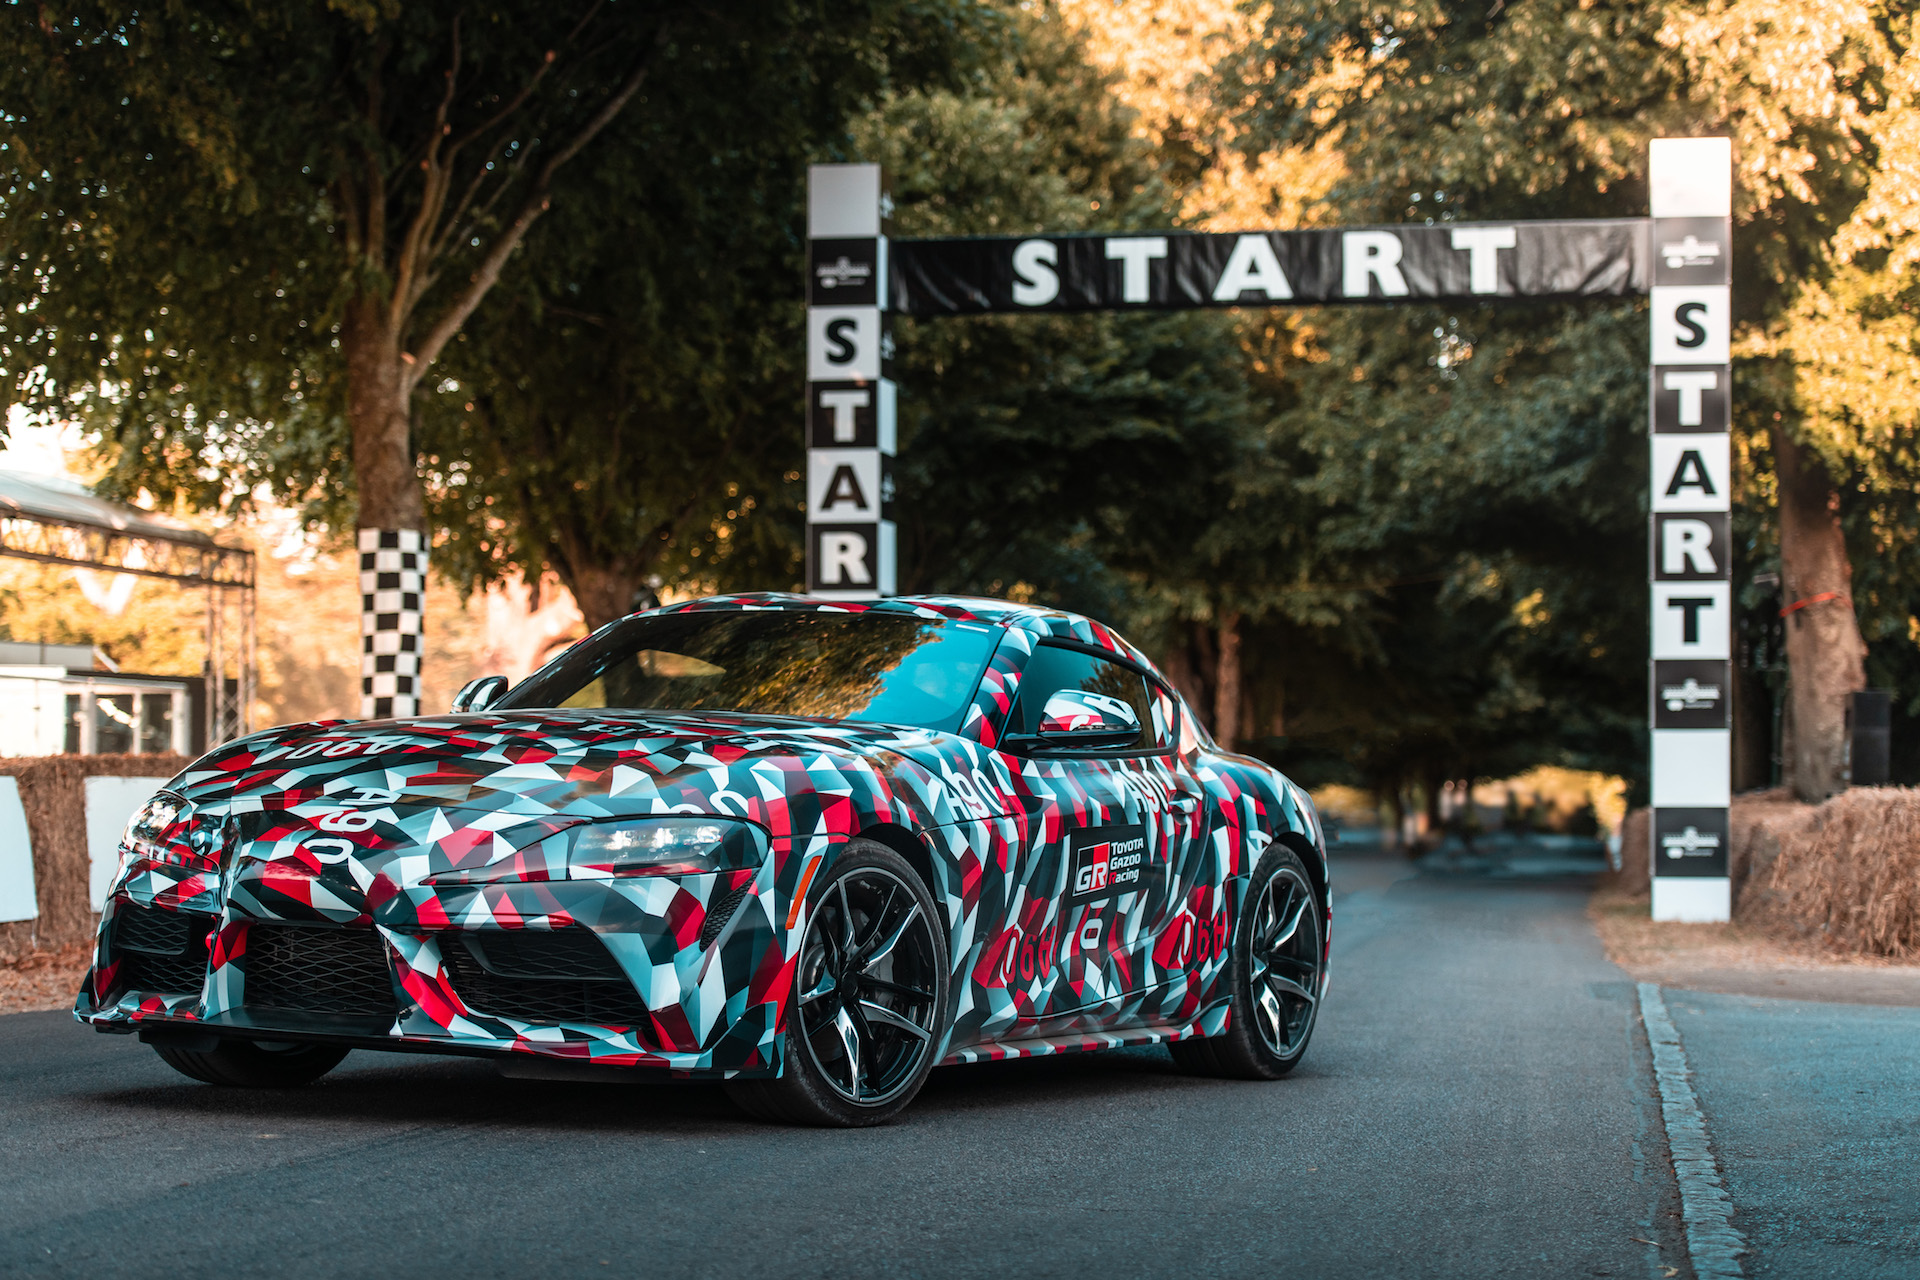 New Toyota Supra Makes Dynamic Debut At Goodwood Festival Of Speed - Goodwood hardware car show